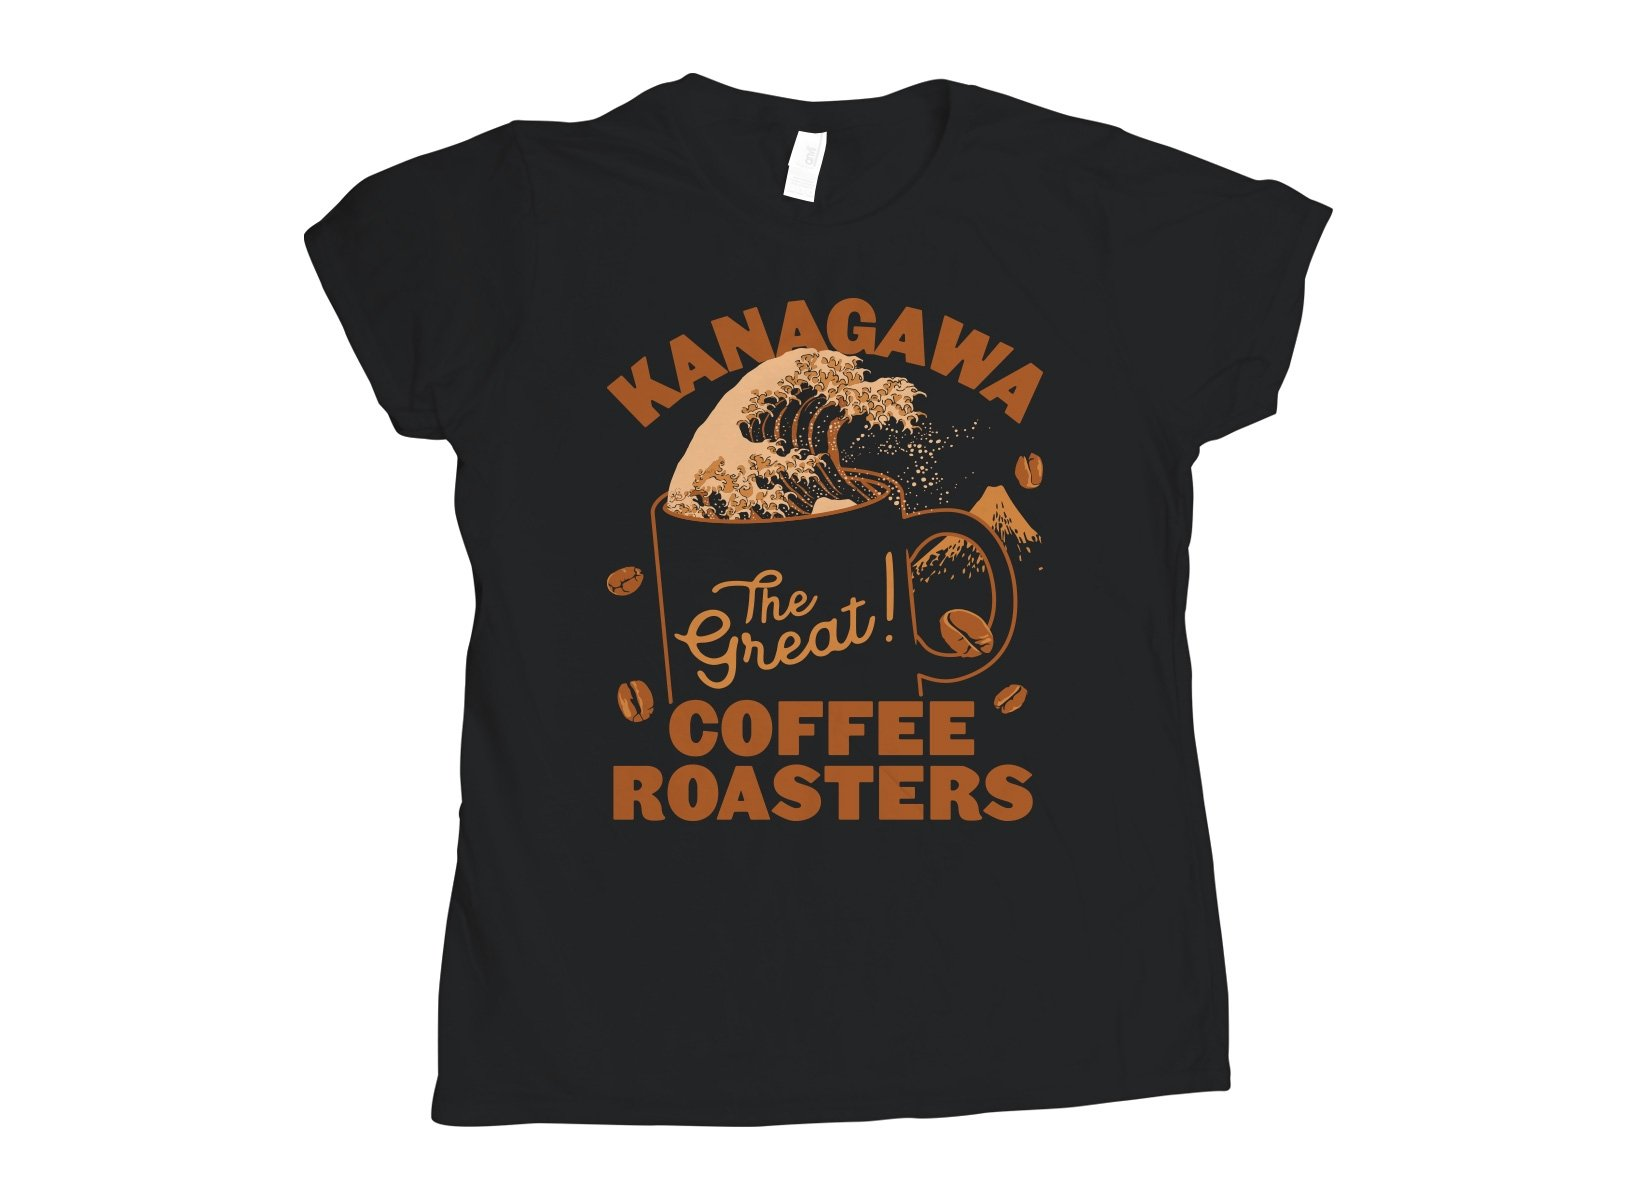 Kanagawa Coffee Roasters on Womens T-Shirt